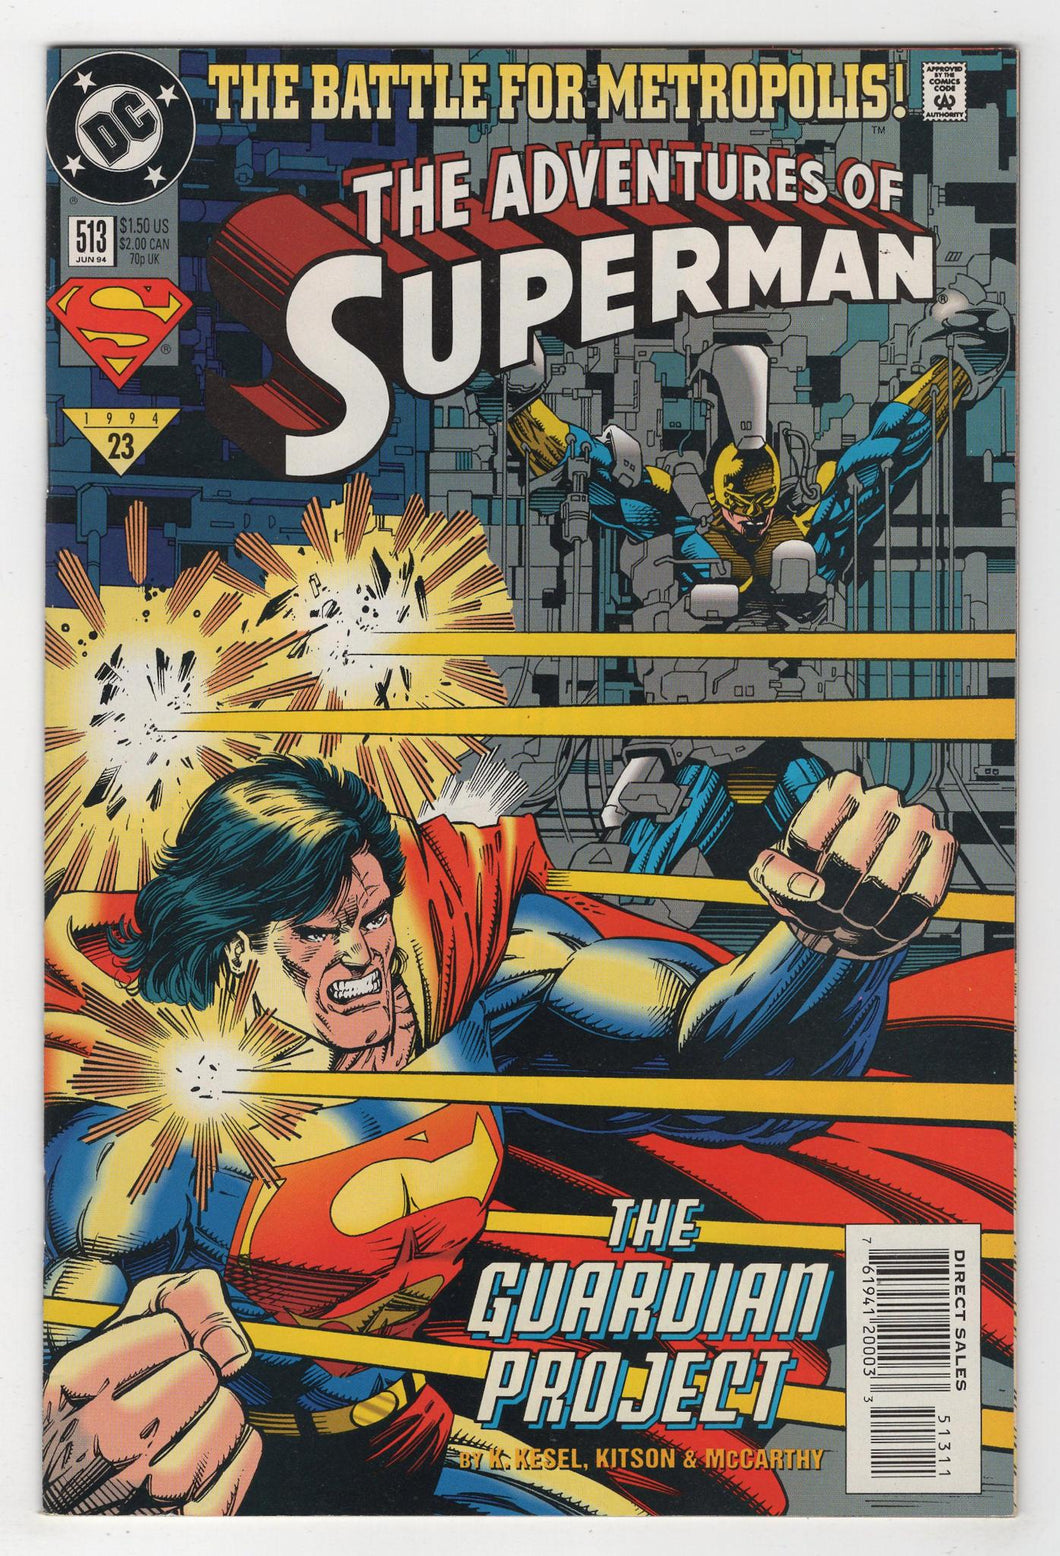 Adventures of Superman #513 Cover Front